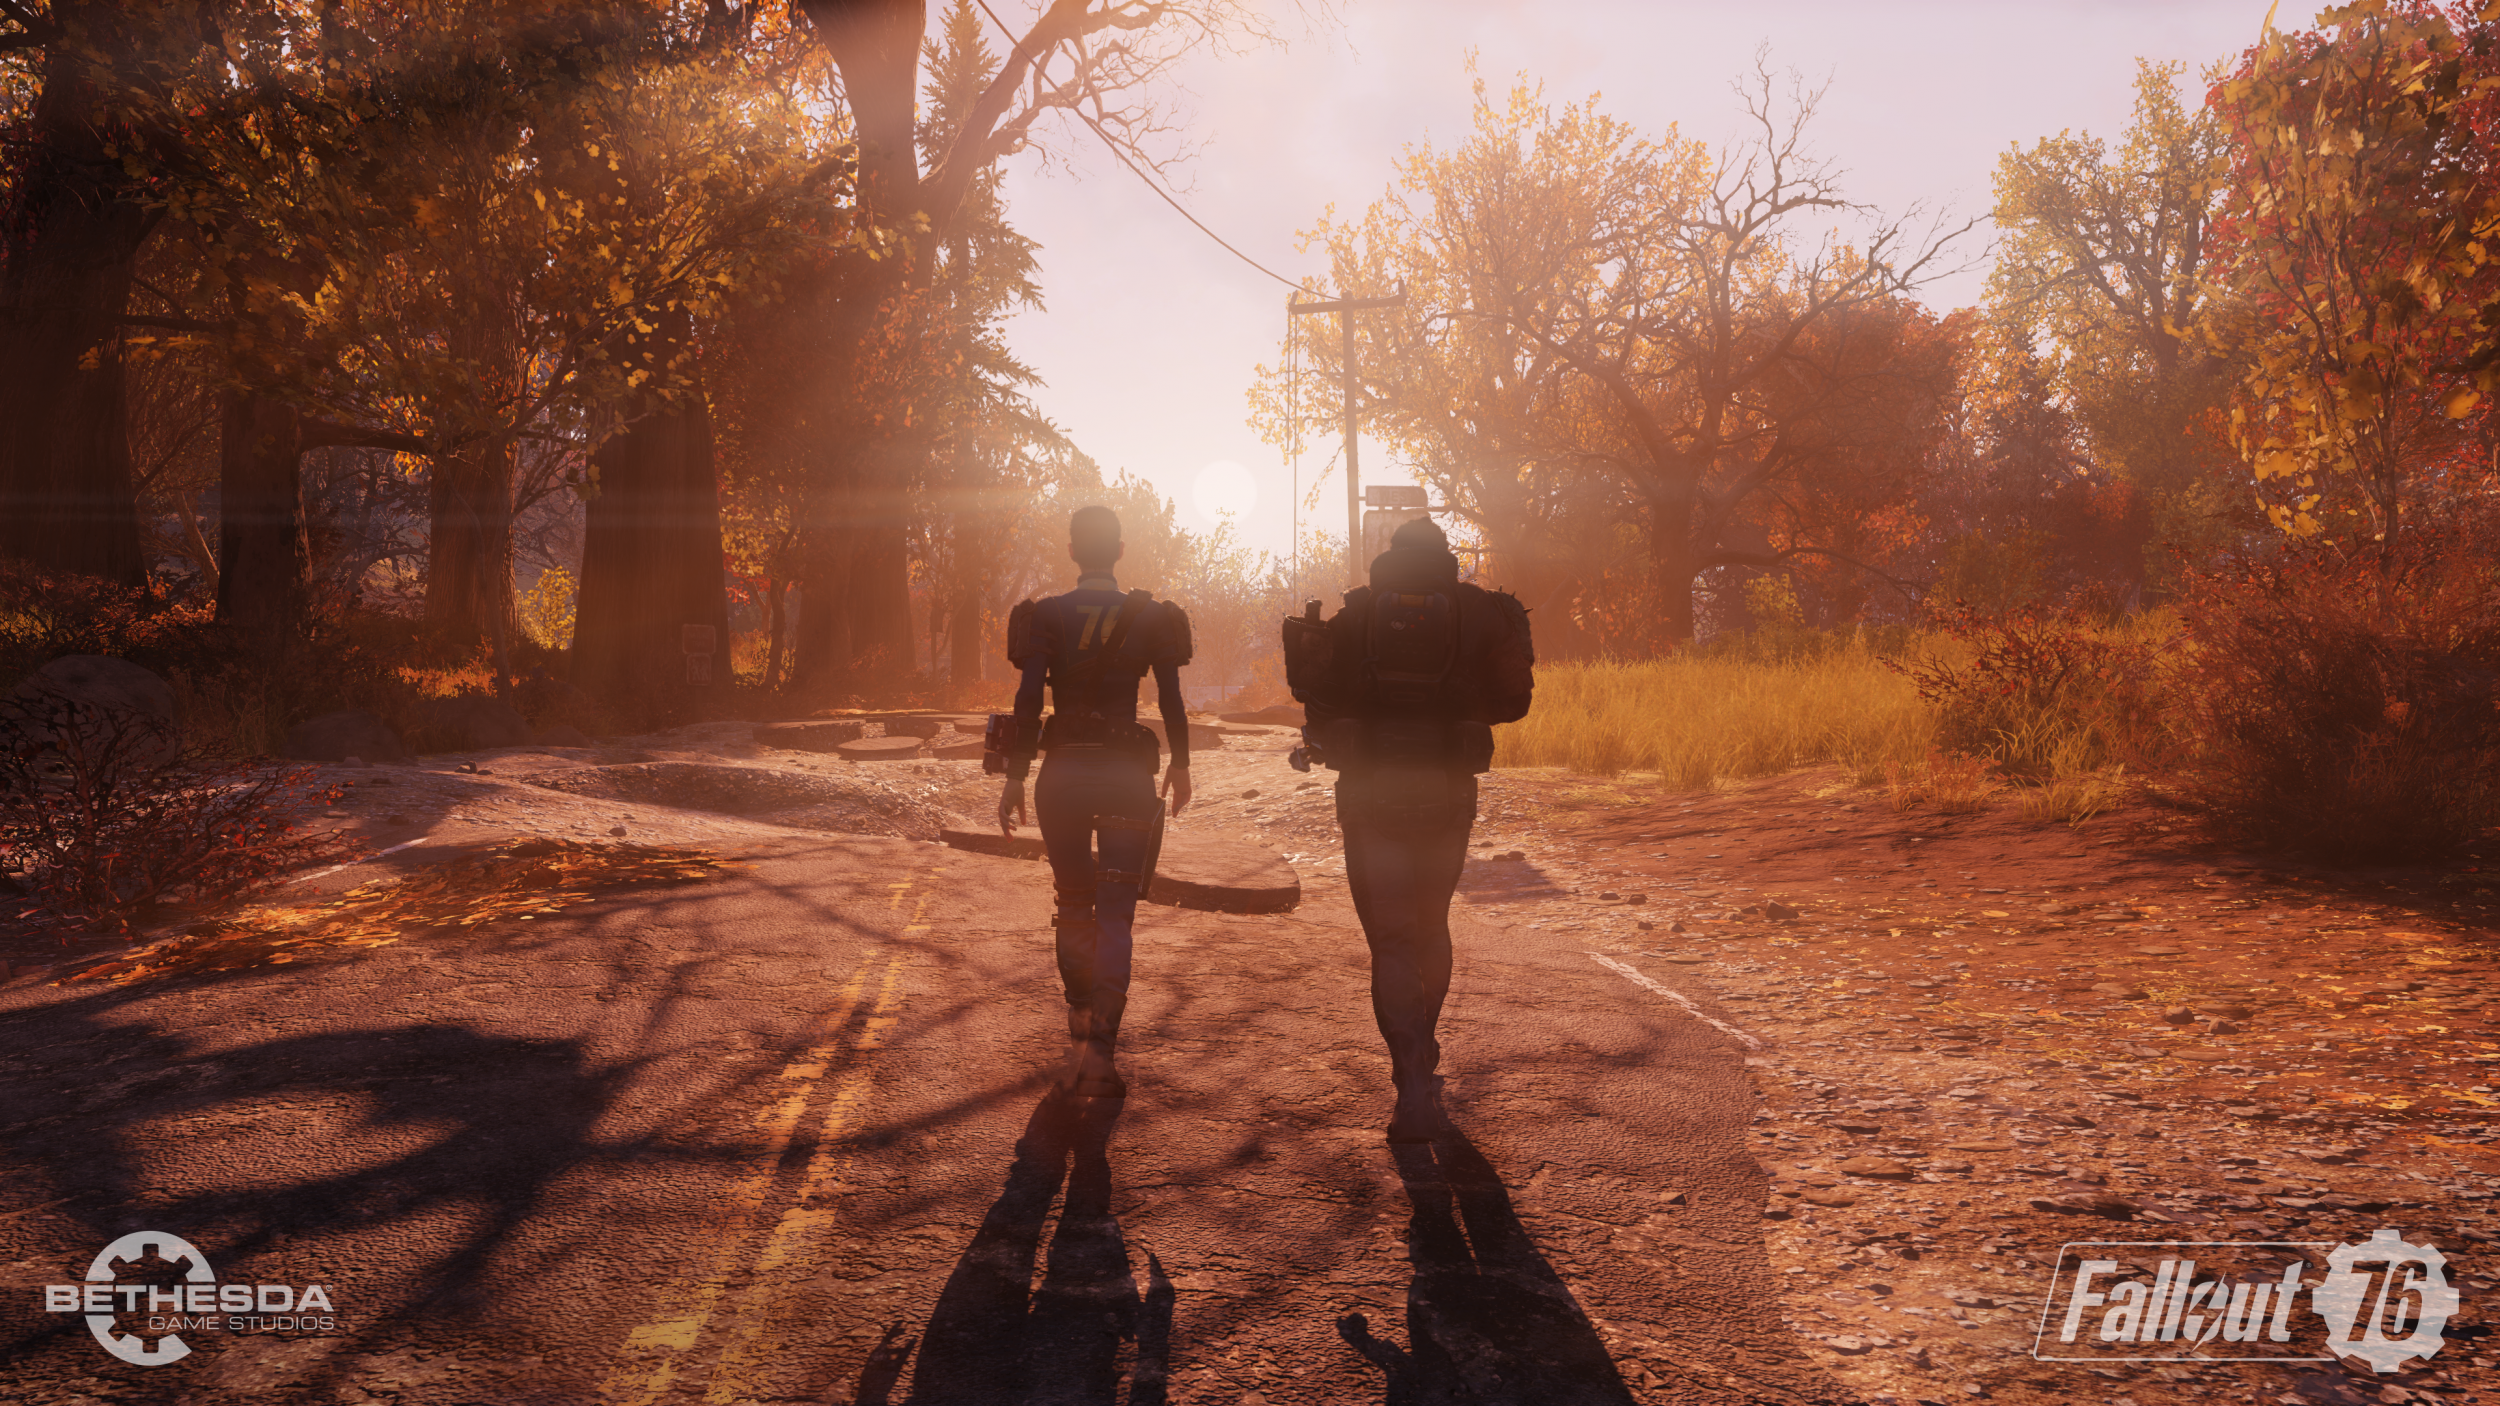 Fallout 76 Fire Breathers Quest Guide